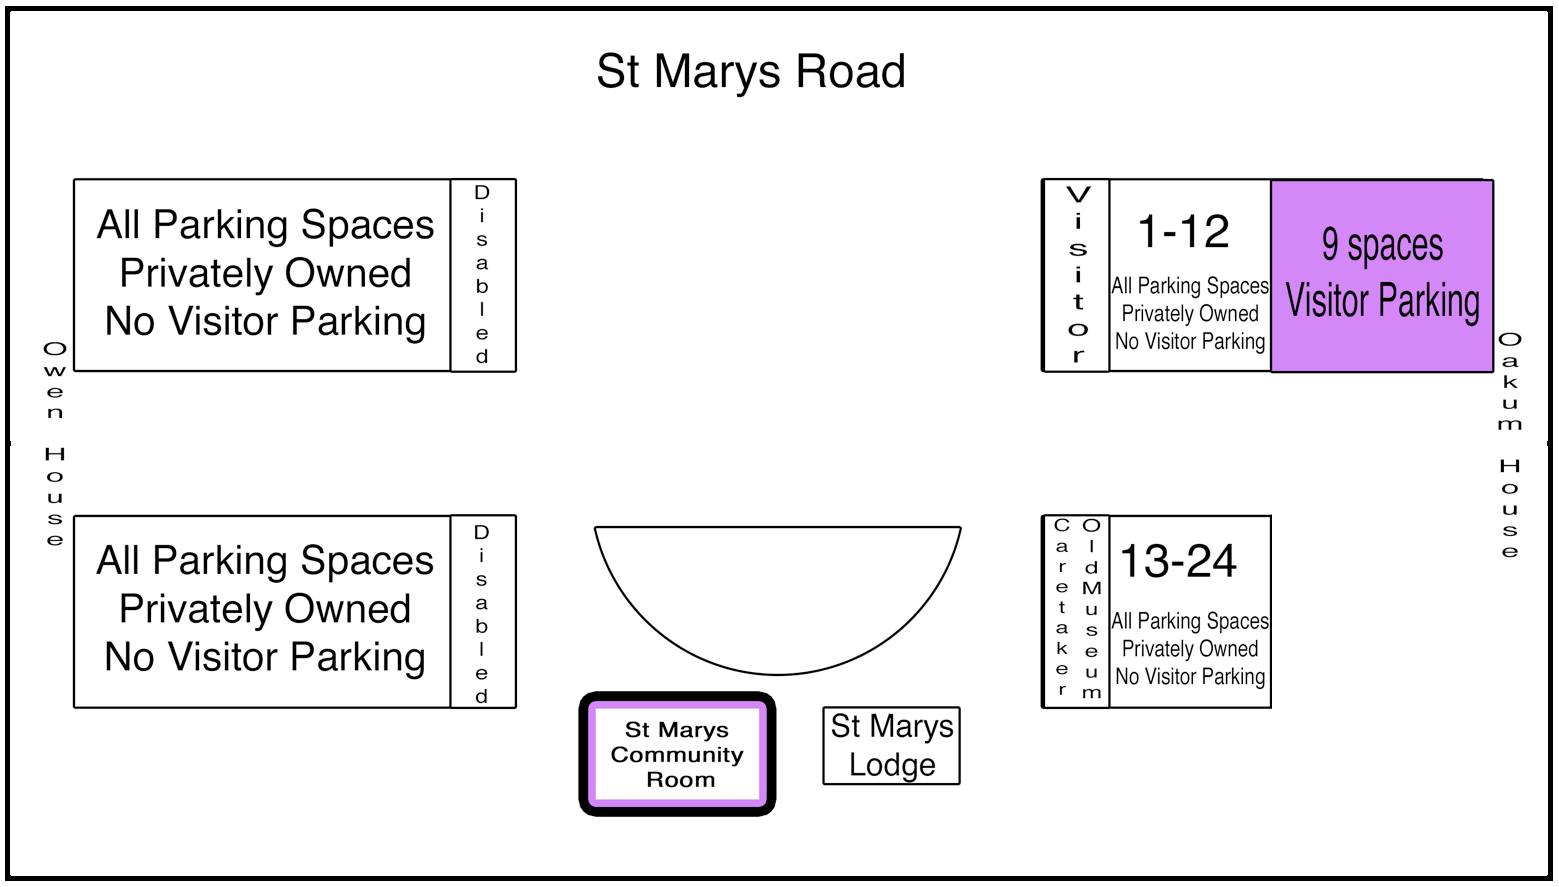 Parking at St Mary's